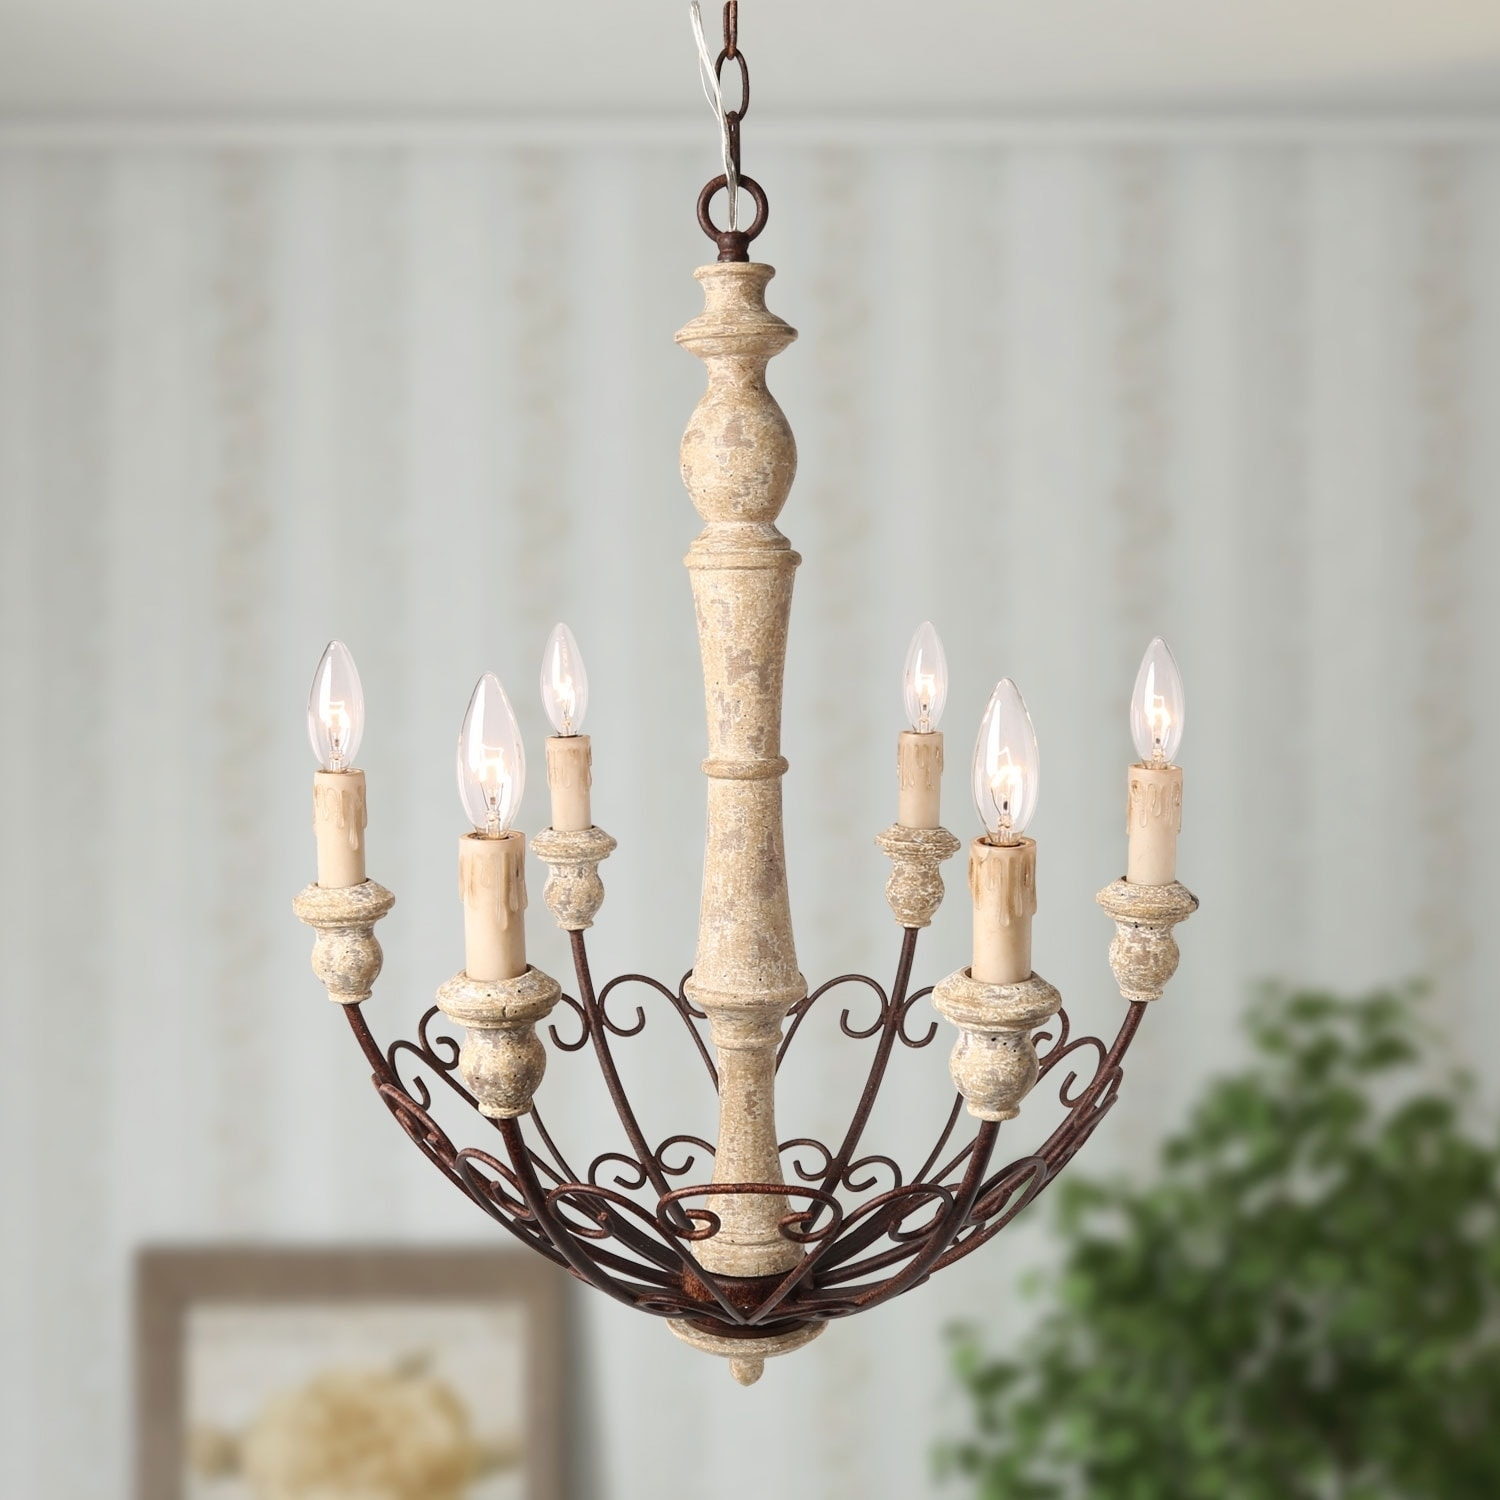 The Gray Barn Windy Bracken 6 Light Shabby Chic Country Chandelier Rustic Pendant